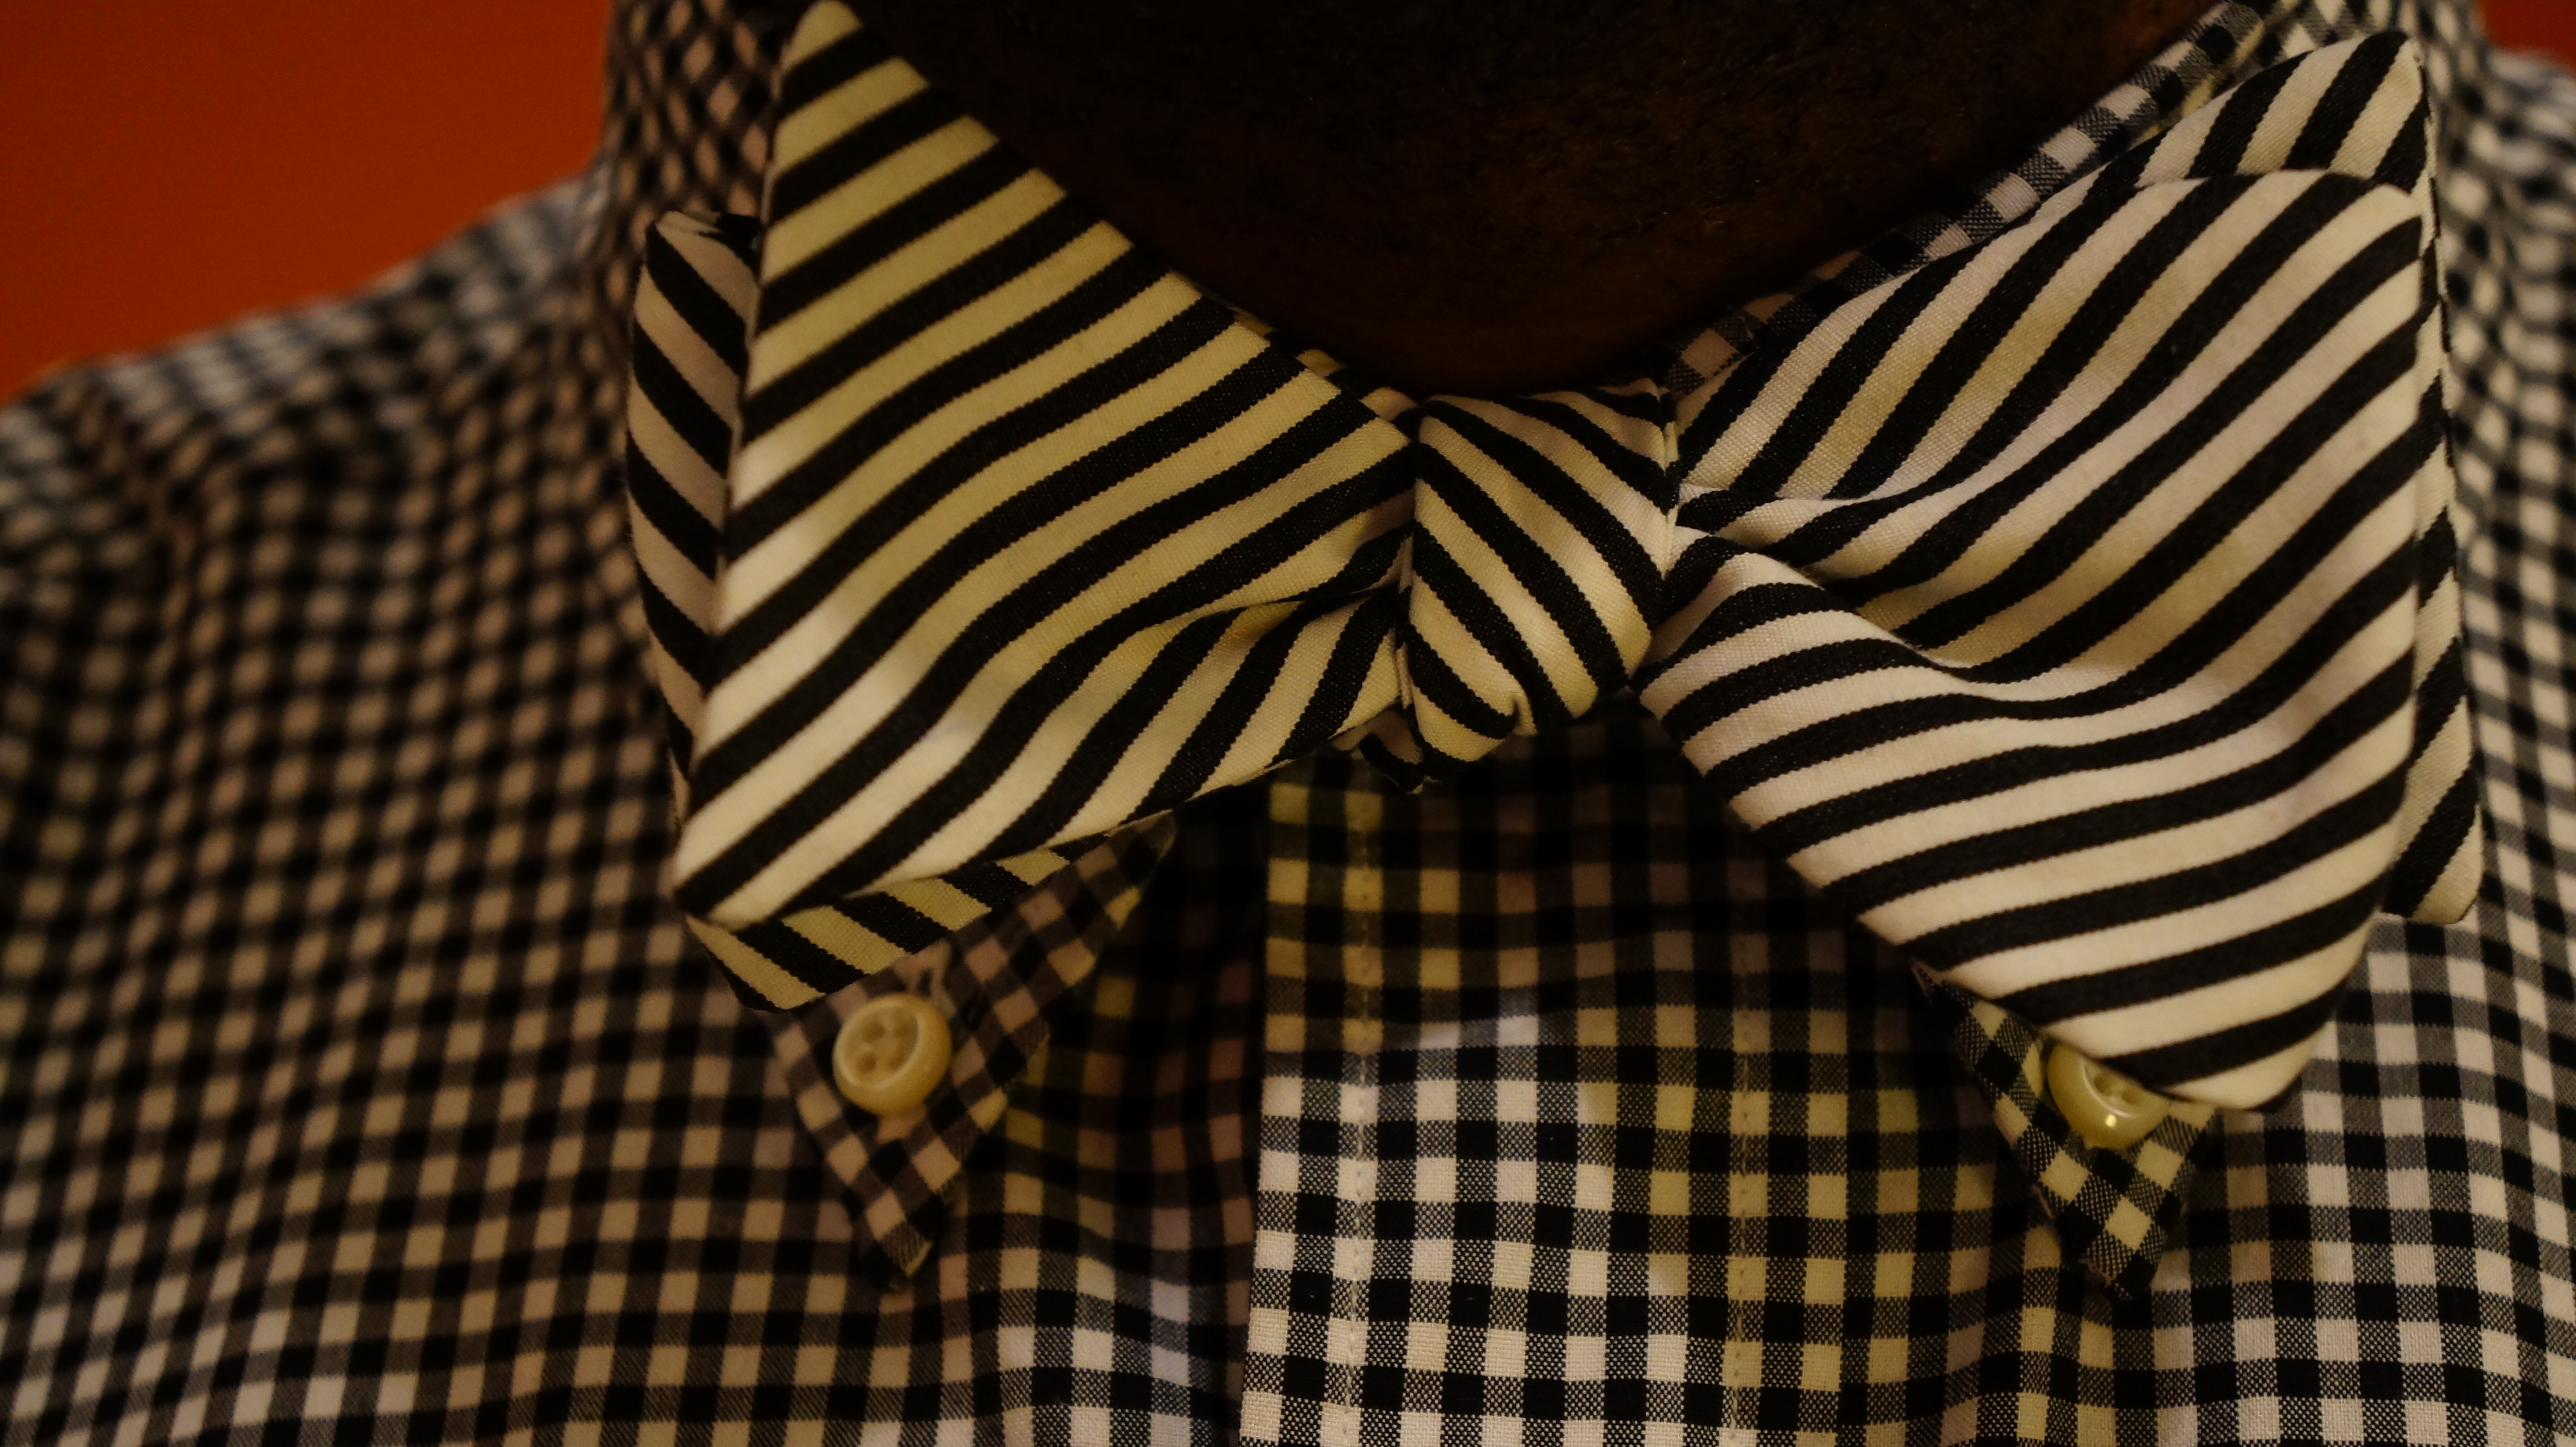 The Bow Tie Flow Meets Ted Rubin